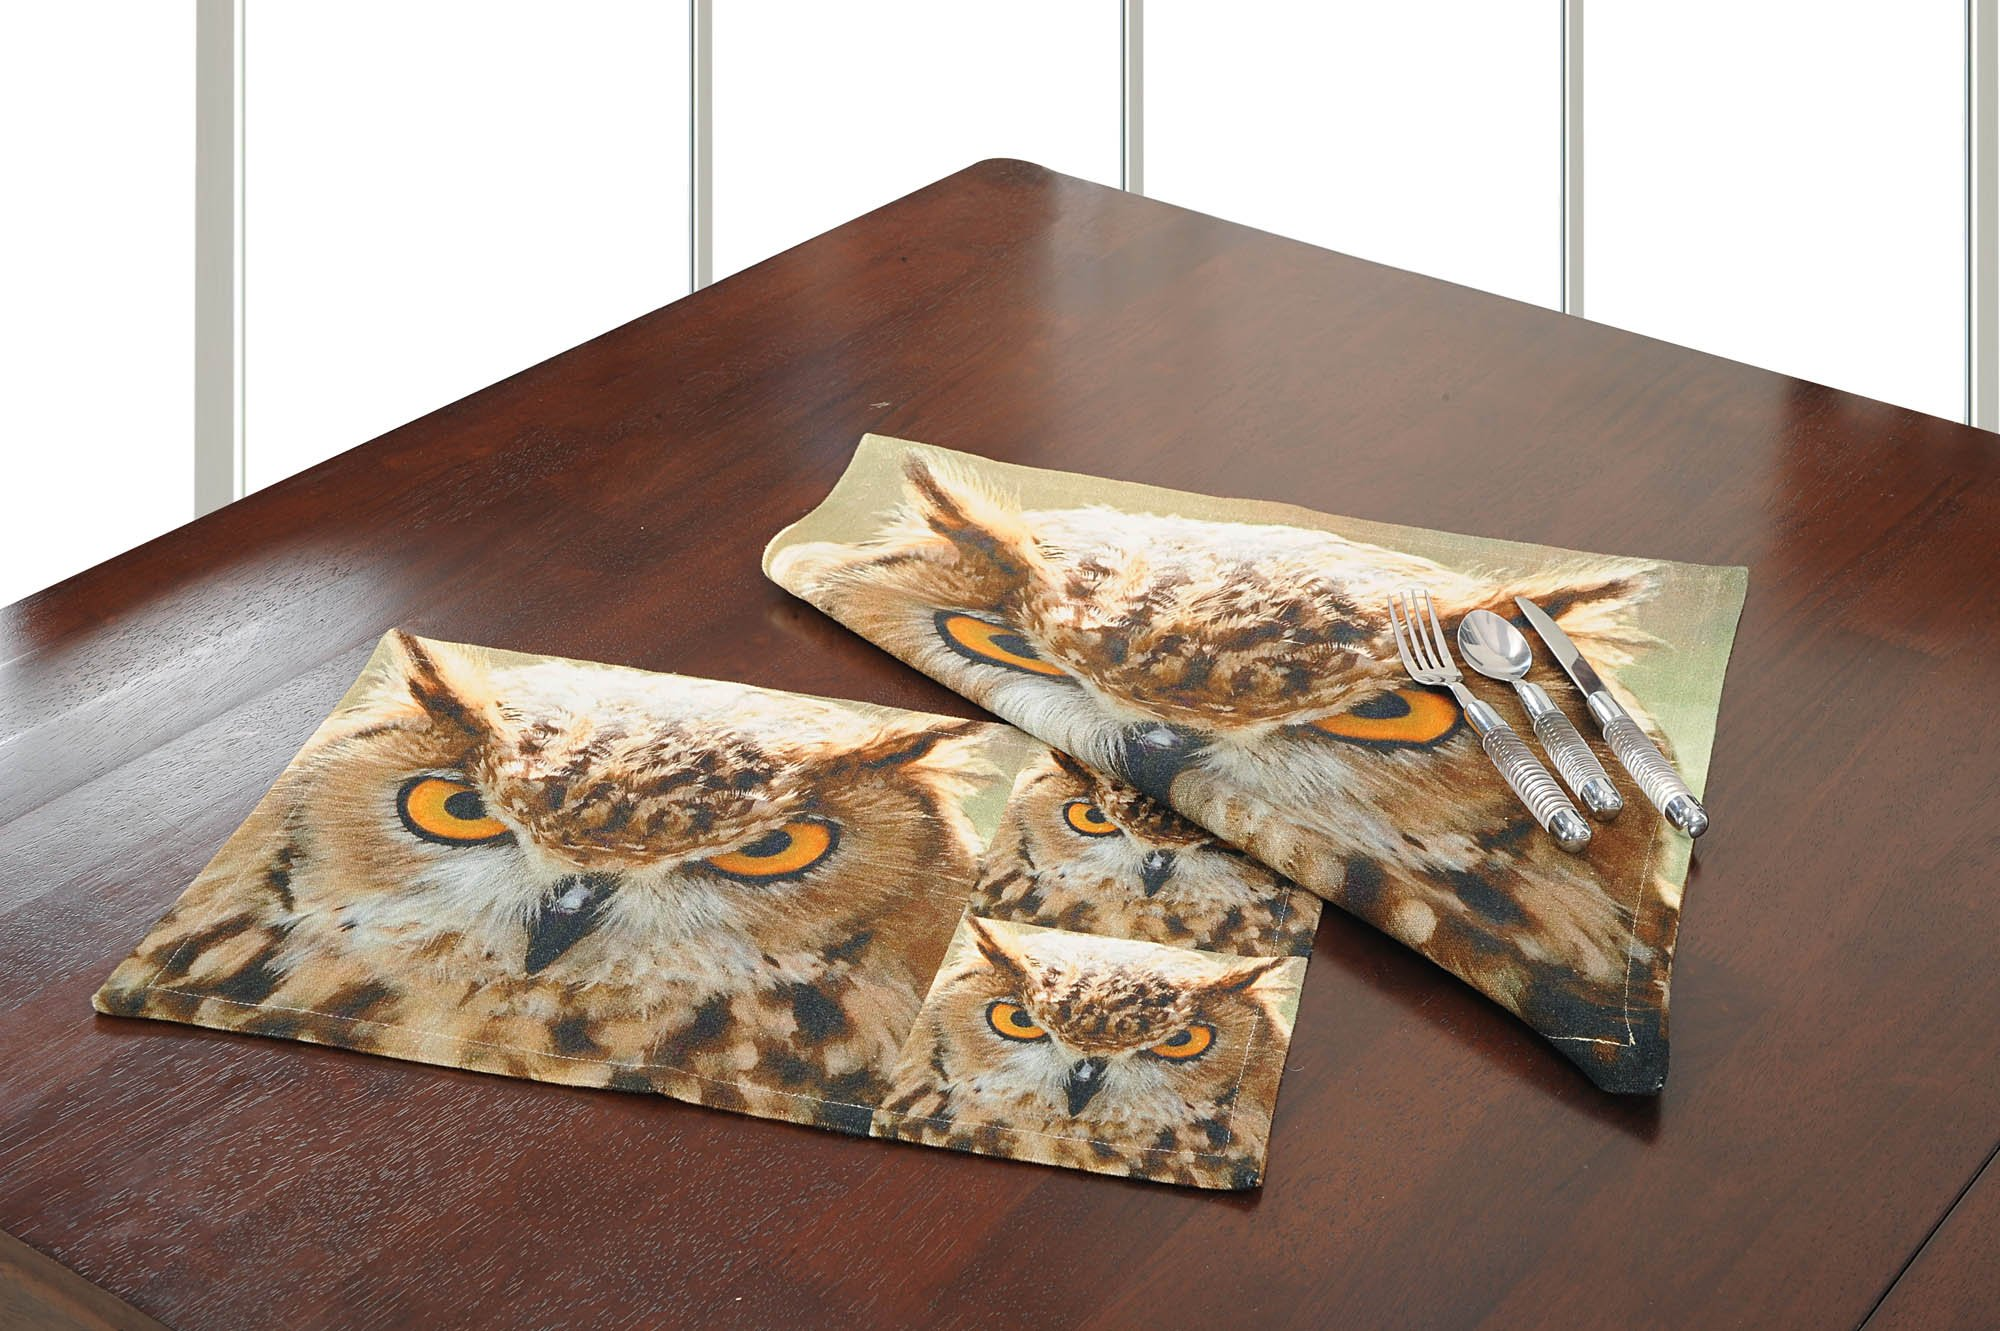 Digitally Printed Mat and Napkin Set Of 6 Cotton Canvas,CAM012-105